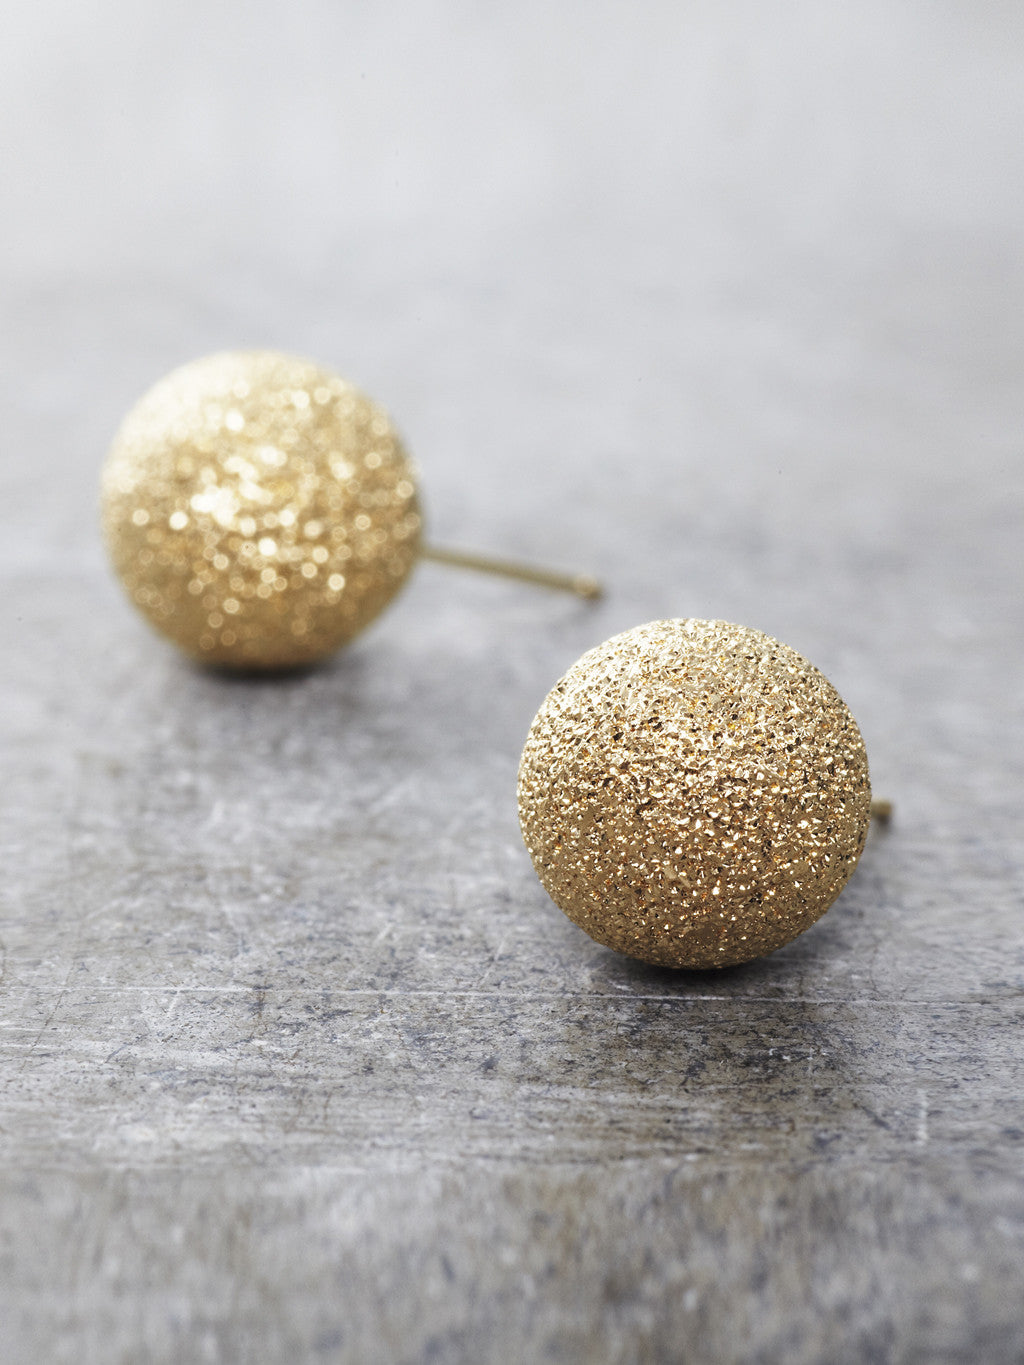 14K Yellow Gold Stardust Post Earrings - 10mm